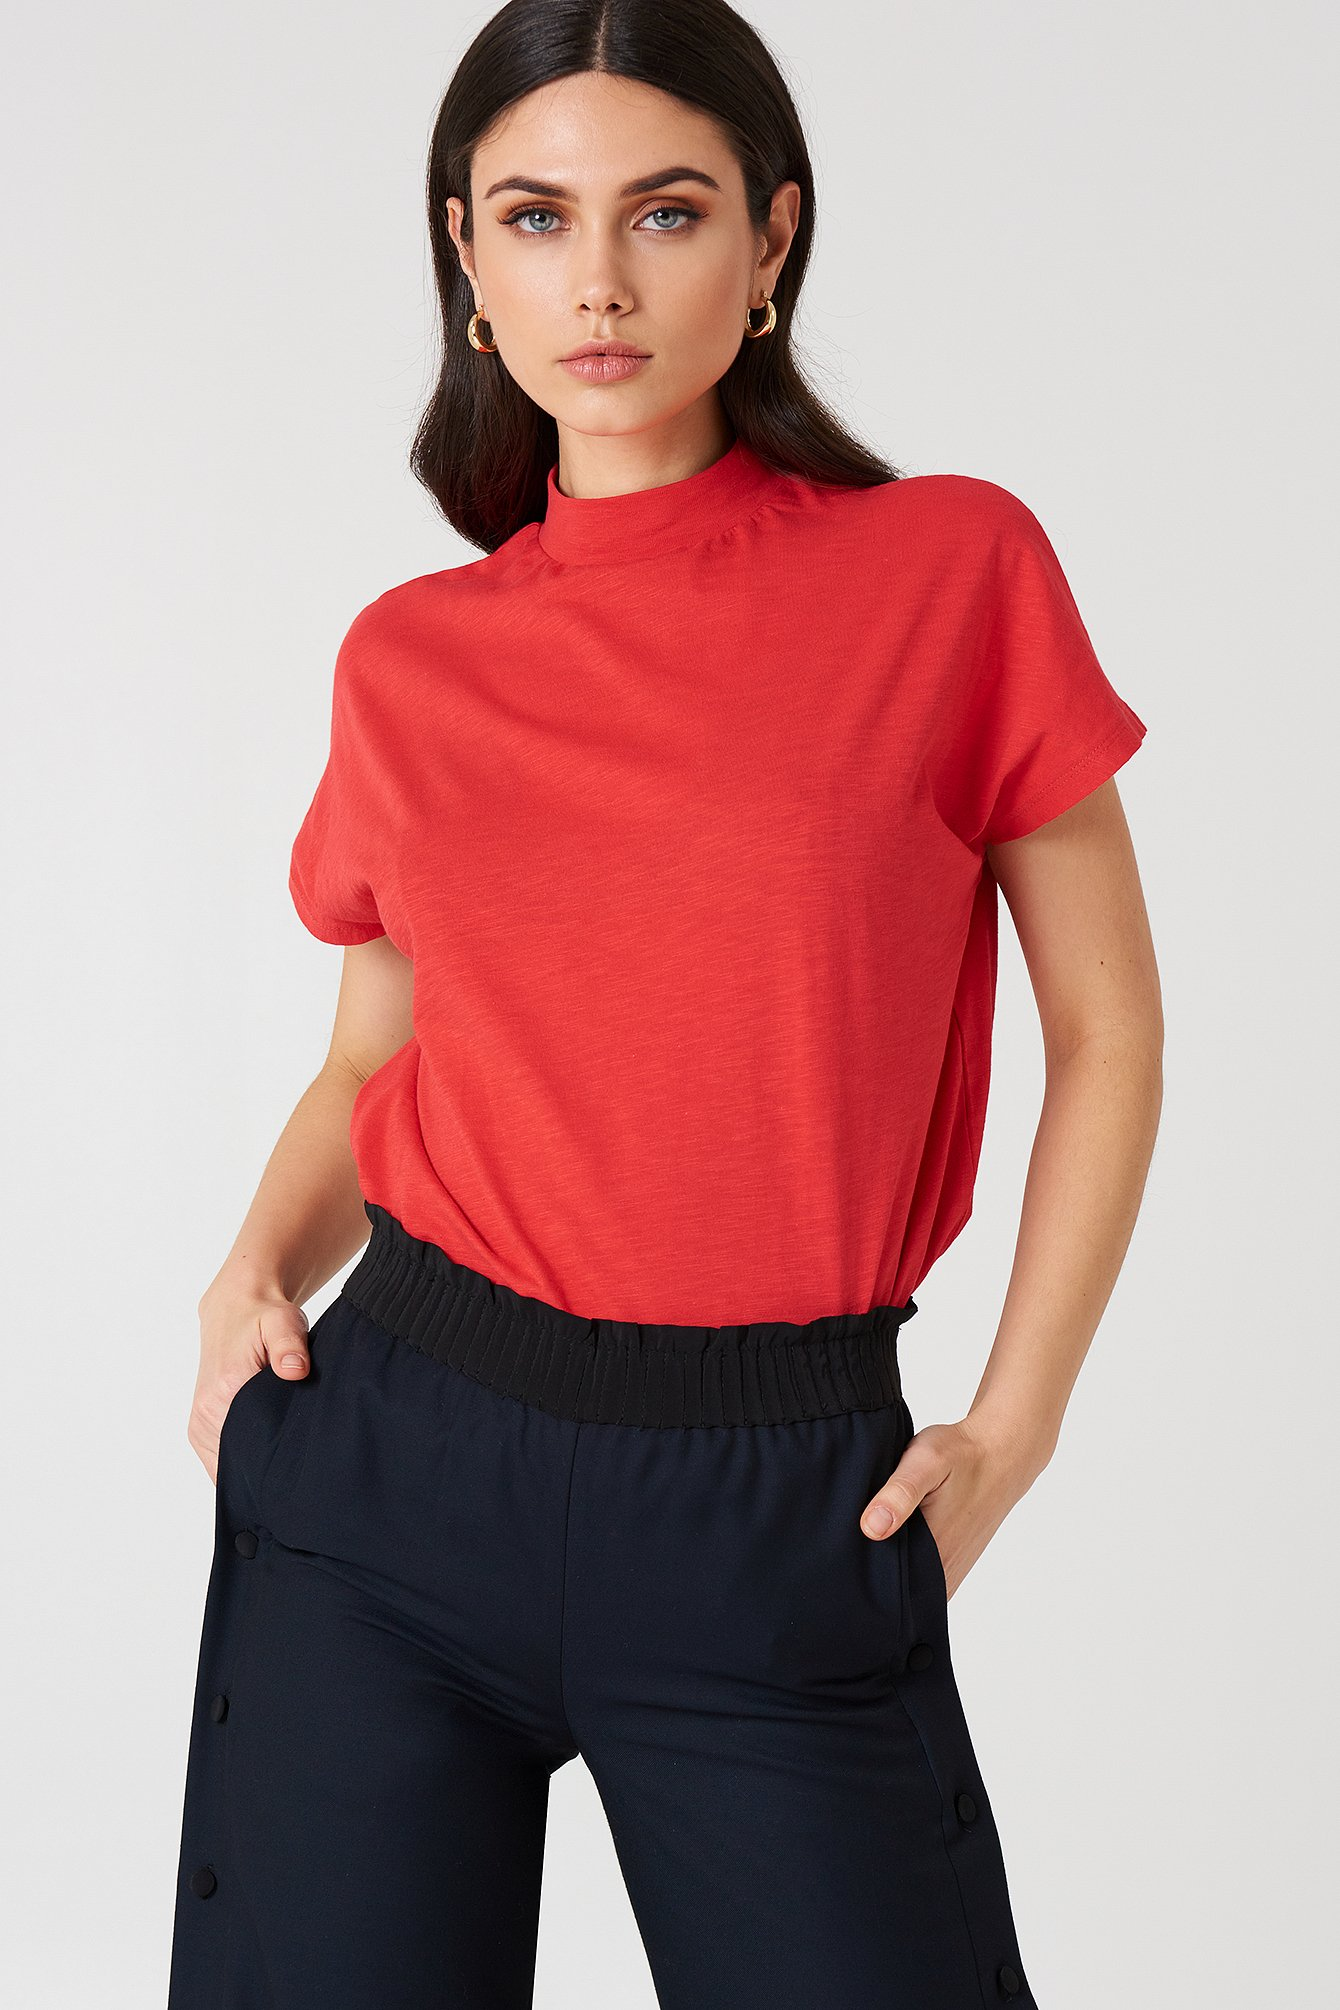 High Neck Cap Sleeve Top Bright Red